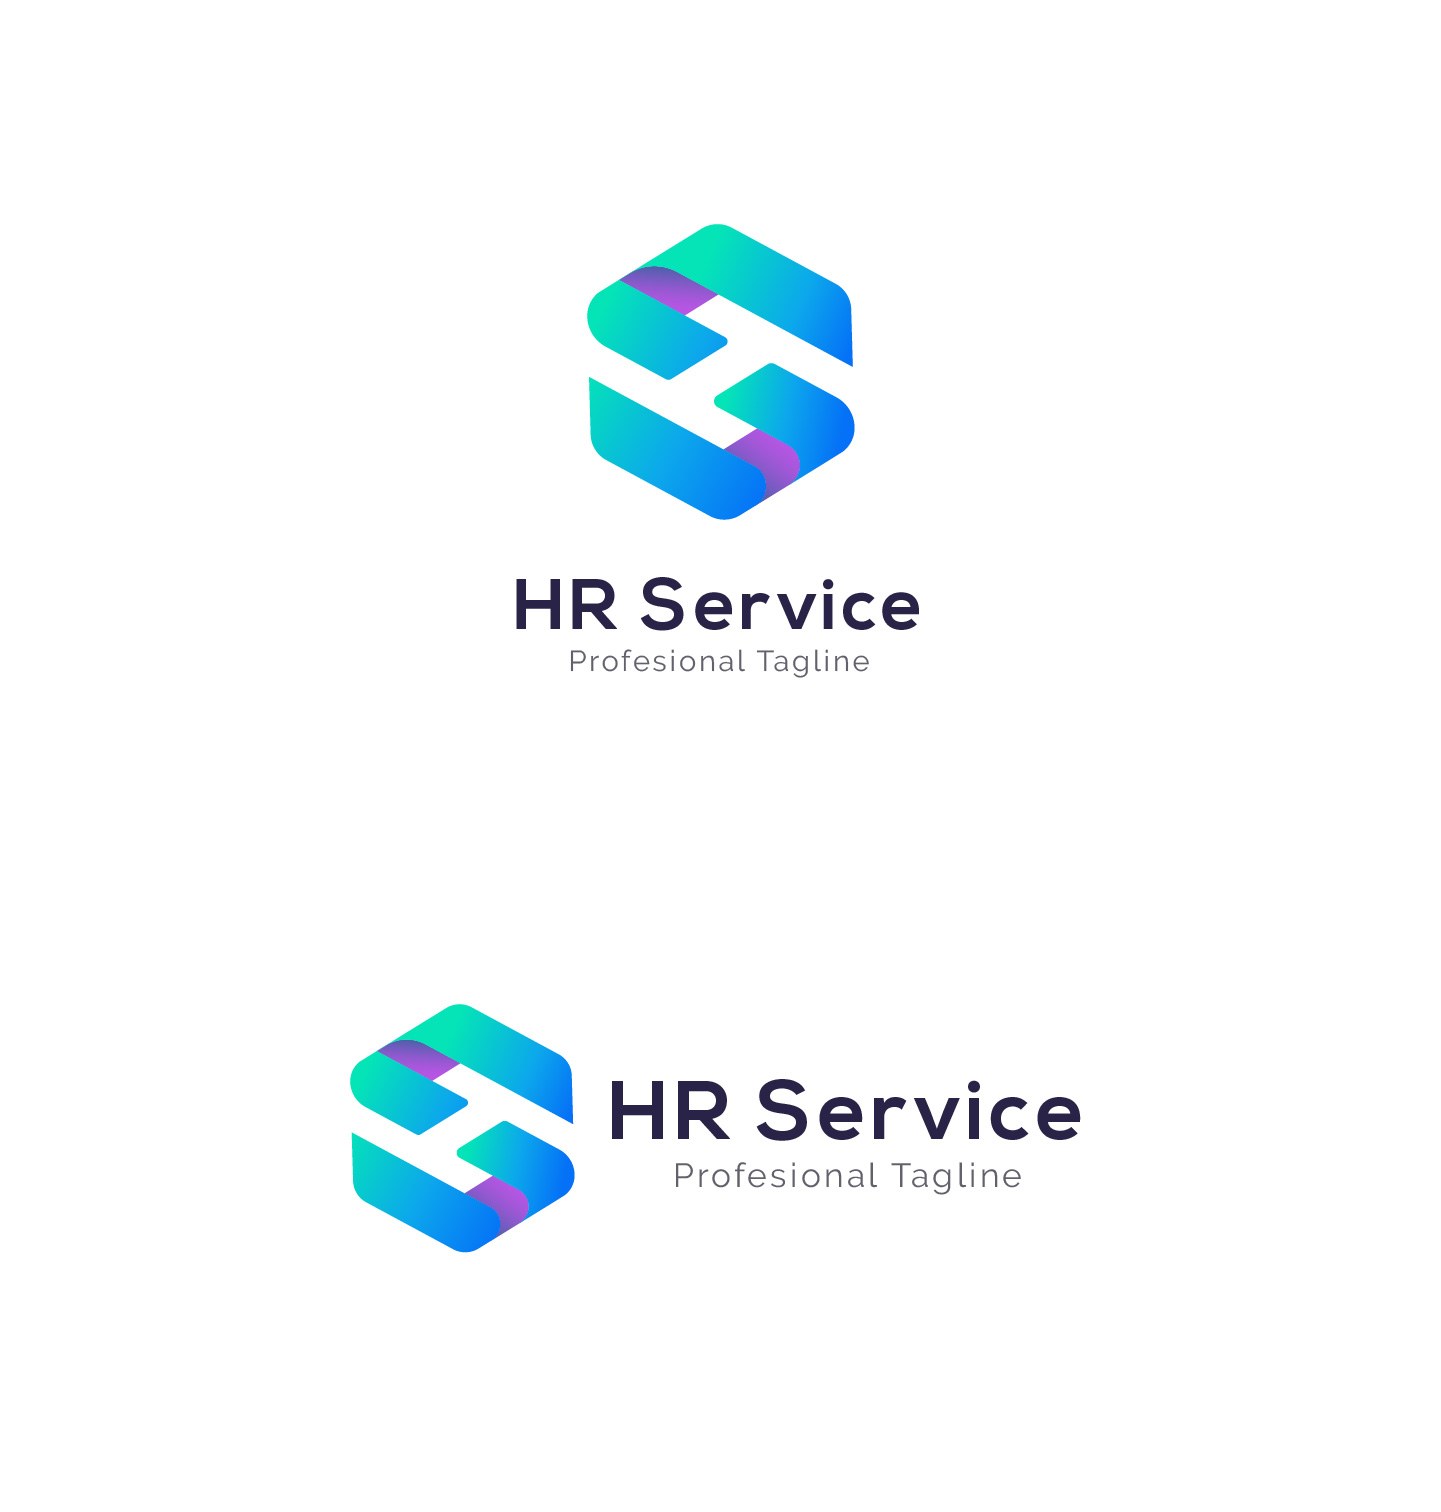 HR Service - H S Letter Logo example image 5